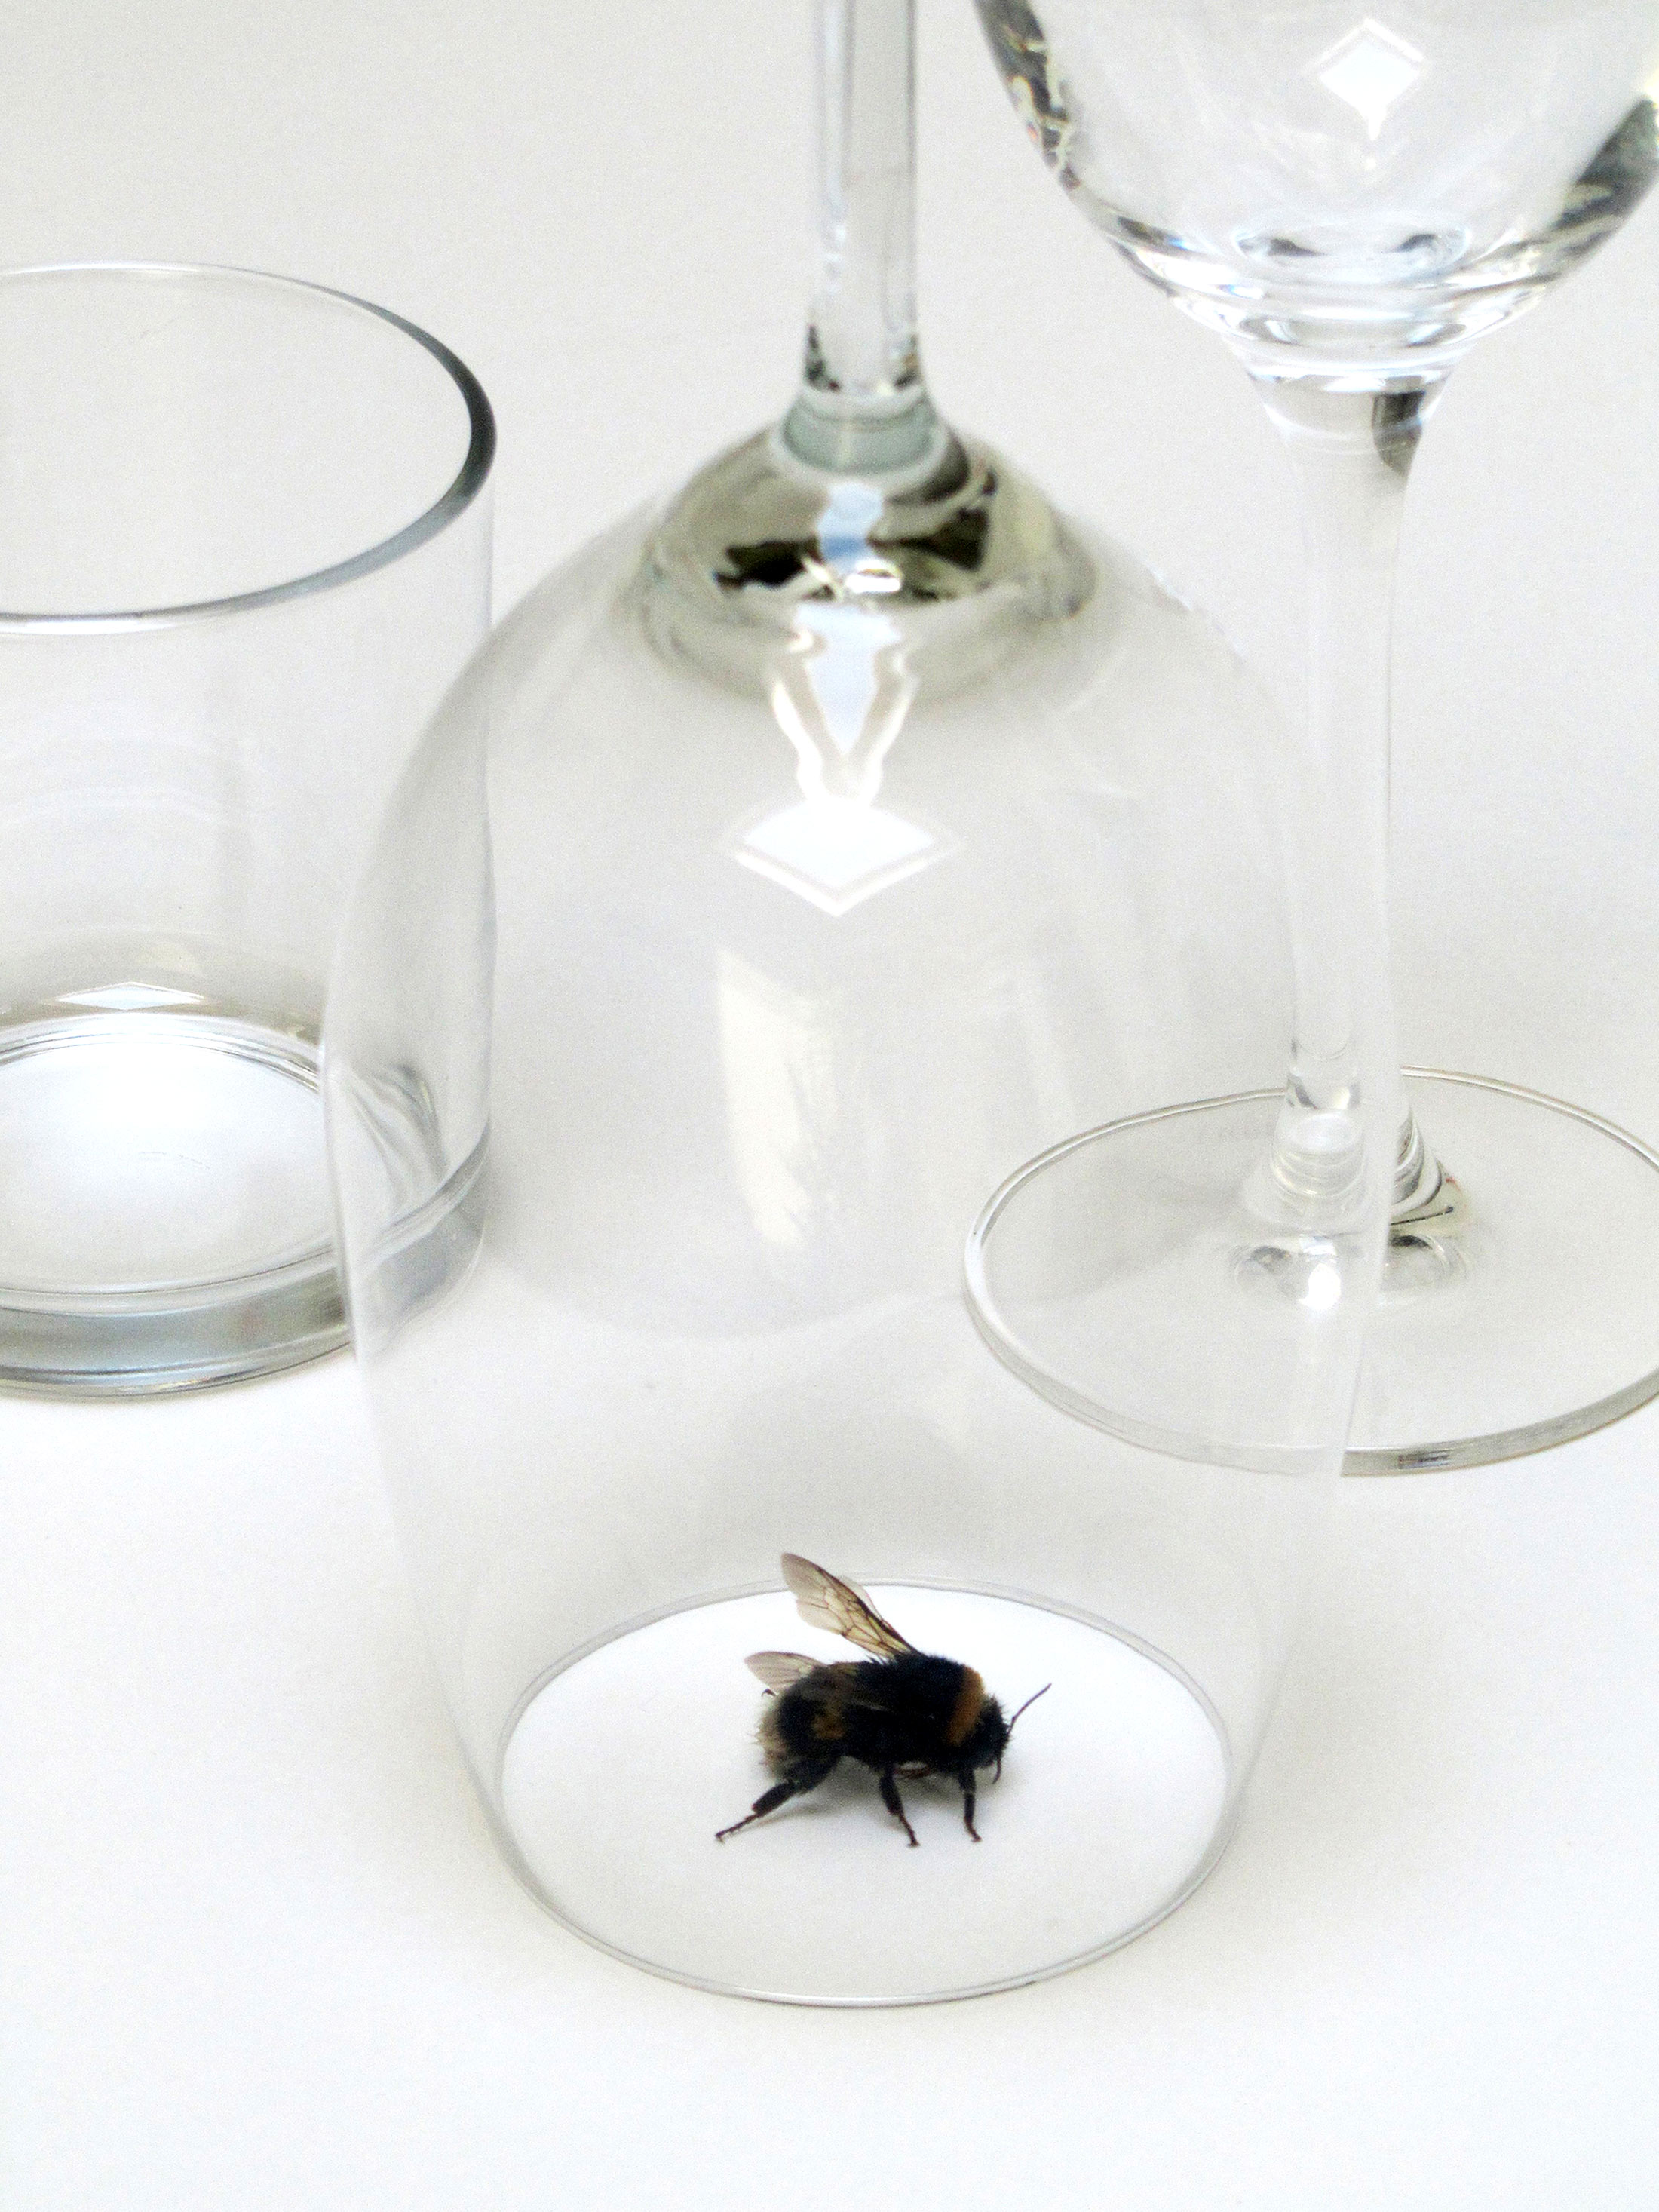 peter de meyer, installation, bumblebee, wine glass, art to explore and collect